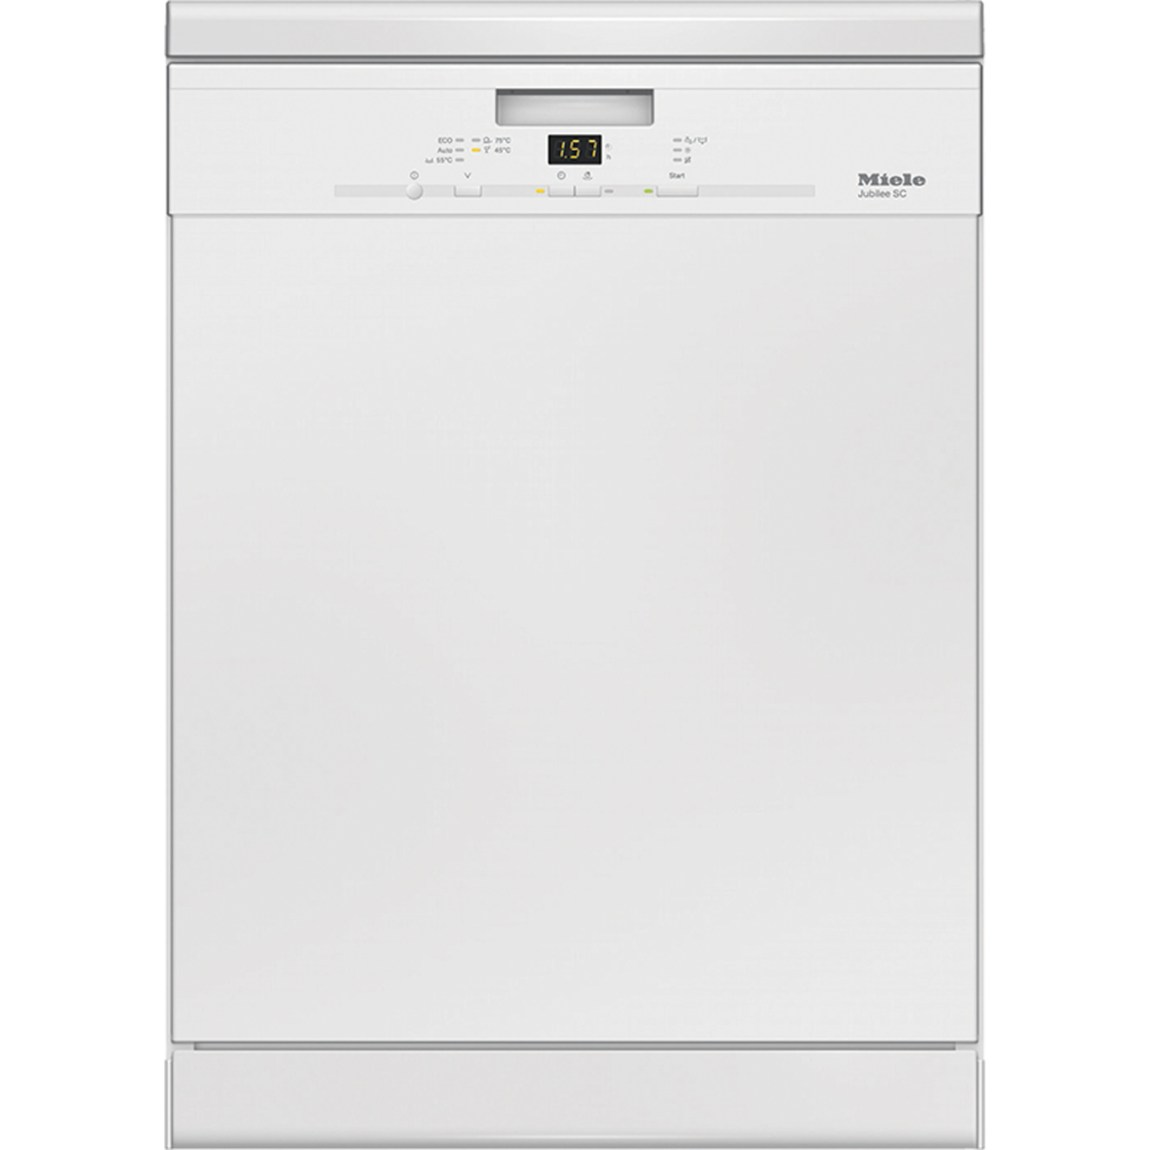 Front view of a Miele G4930SC Dishwasher